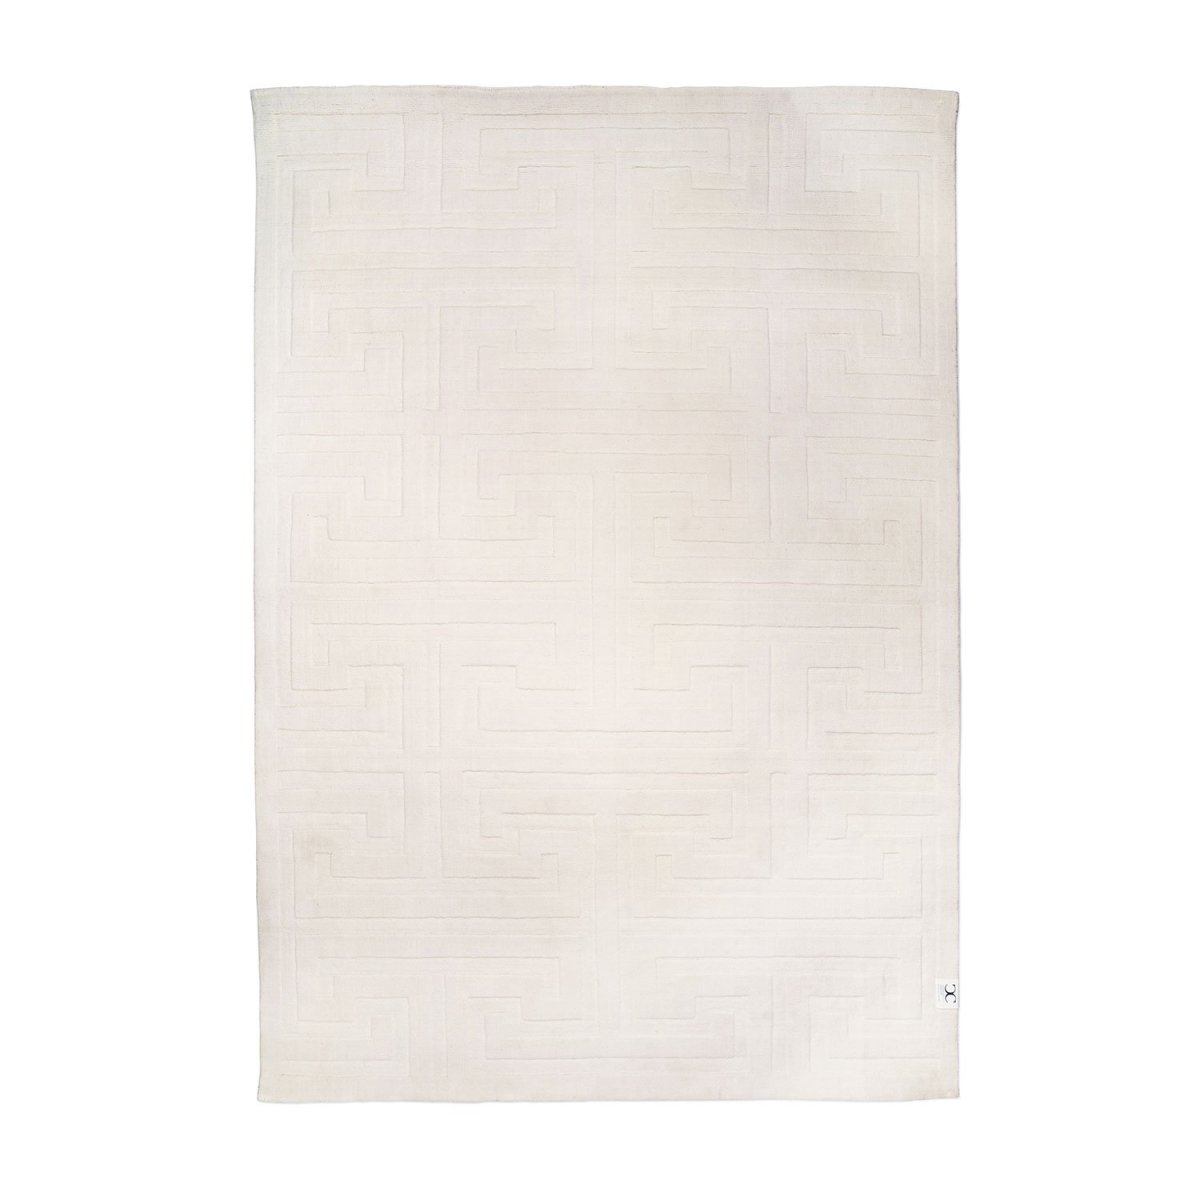 Matta Key Wool från Classic Collection, White - Posh Living